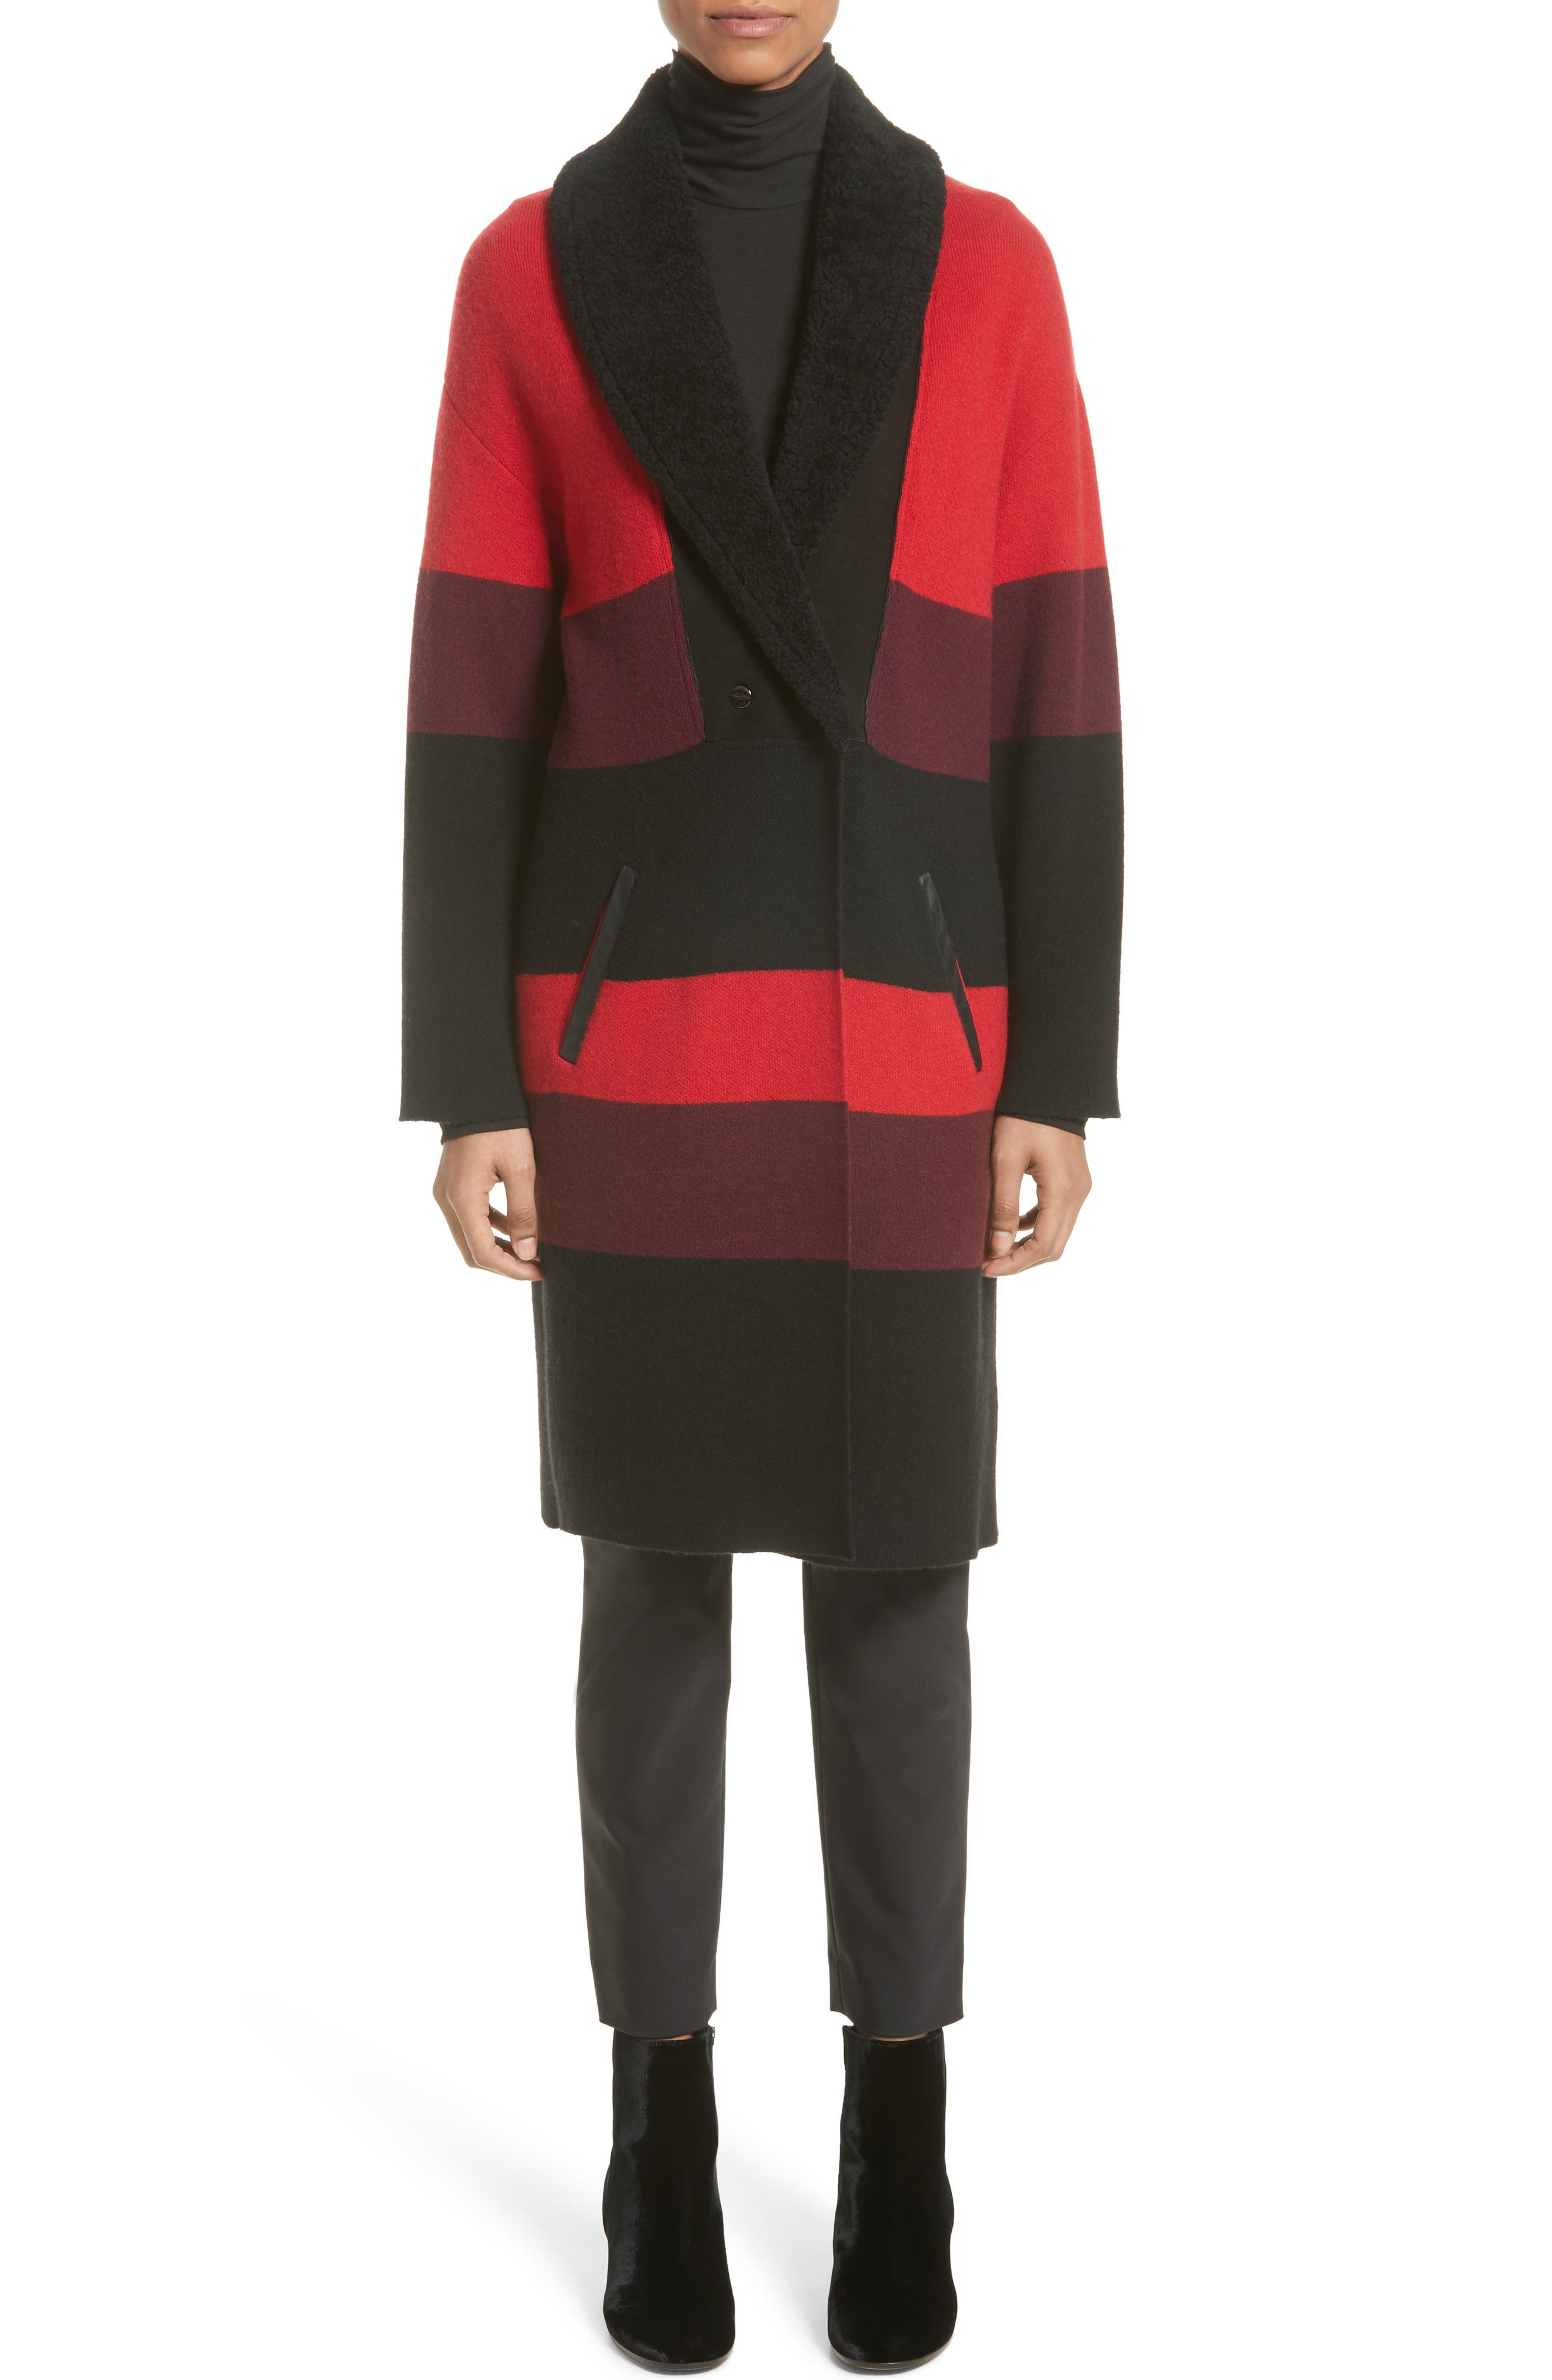 Double Knit Felted Wool Blend Coat with Genuine Shearling Collar,                             Alternate thumbnail 8, color,                             Caviar/ Sari Multi